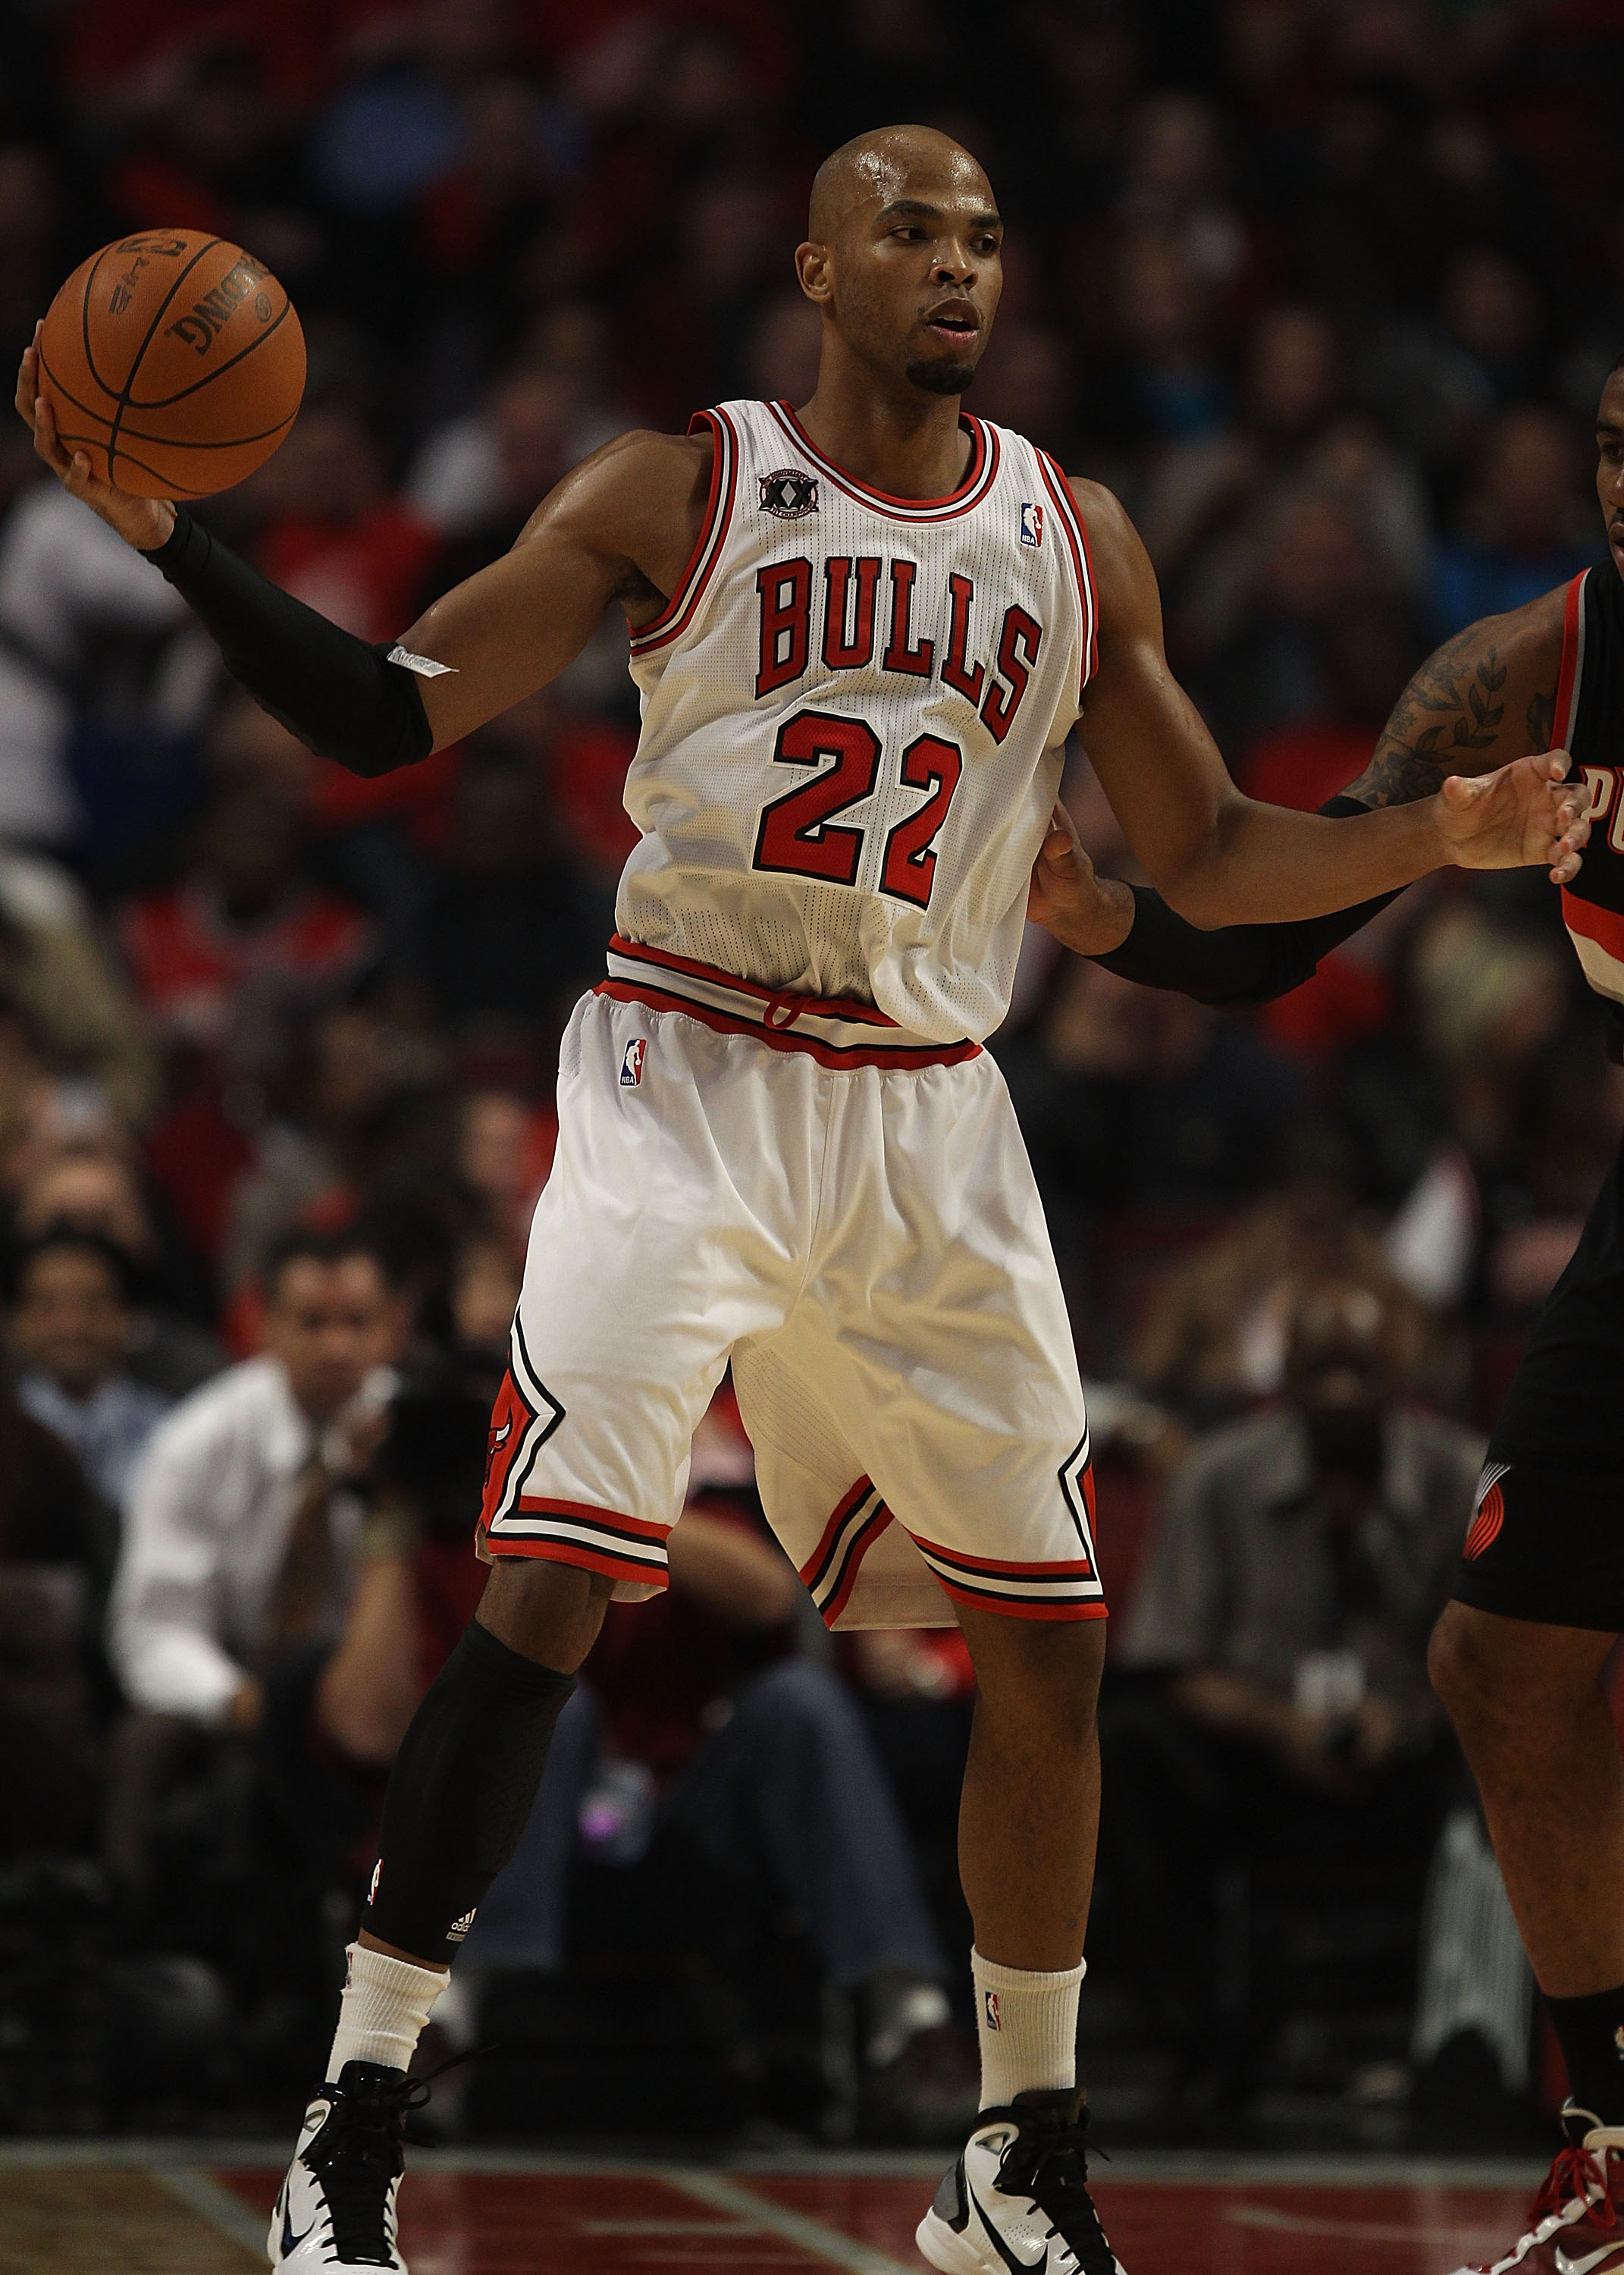 CHICAGO - NOVEMBER 01: Taj Gibson #22 of the Chicago Bulls looks to pass against the Portland Trail Blazers at the United Center on November 1, 2010 in Chicago, Illinois. The Bulls defeated the Trail Blazers 110-98. NOTE TO USER: User expressly acknowledg